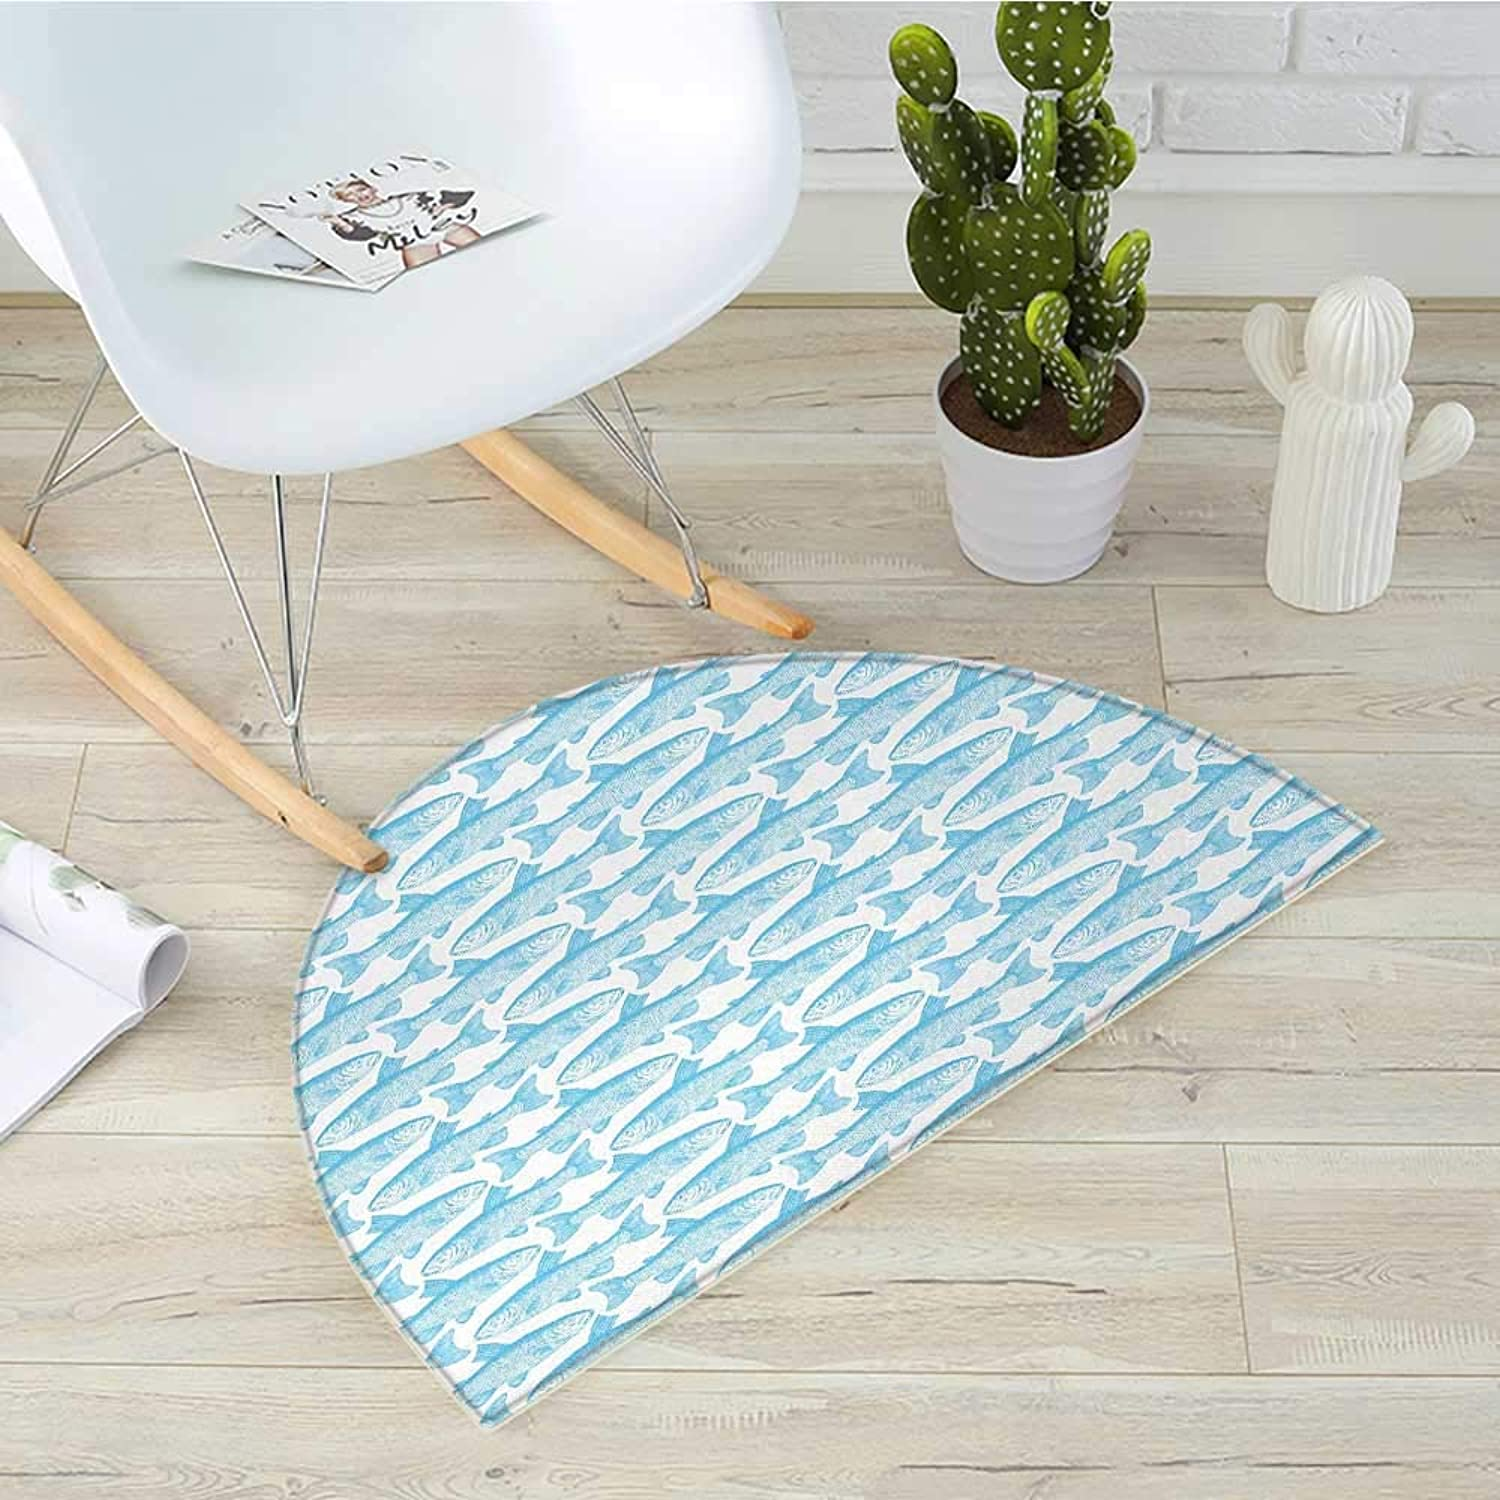 Fish Semicircle Doormat Ichthyologist Sketch of an Arctic Char Displayed in Lines Single color Design on White Halfmoon doormats H 39.3  xD 59  Seafoam